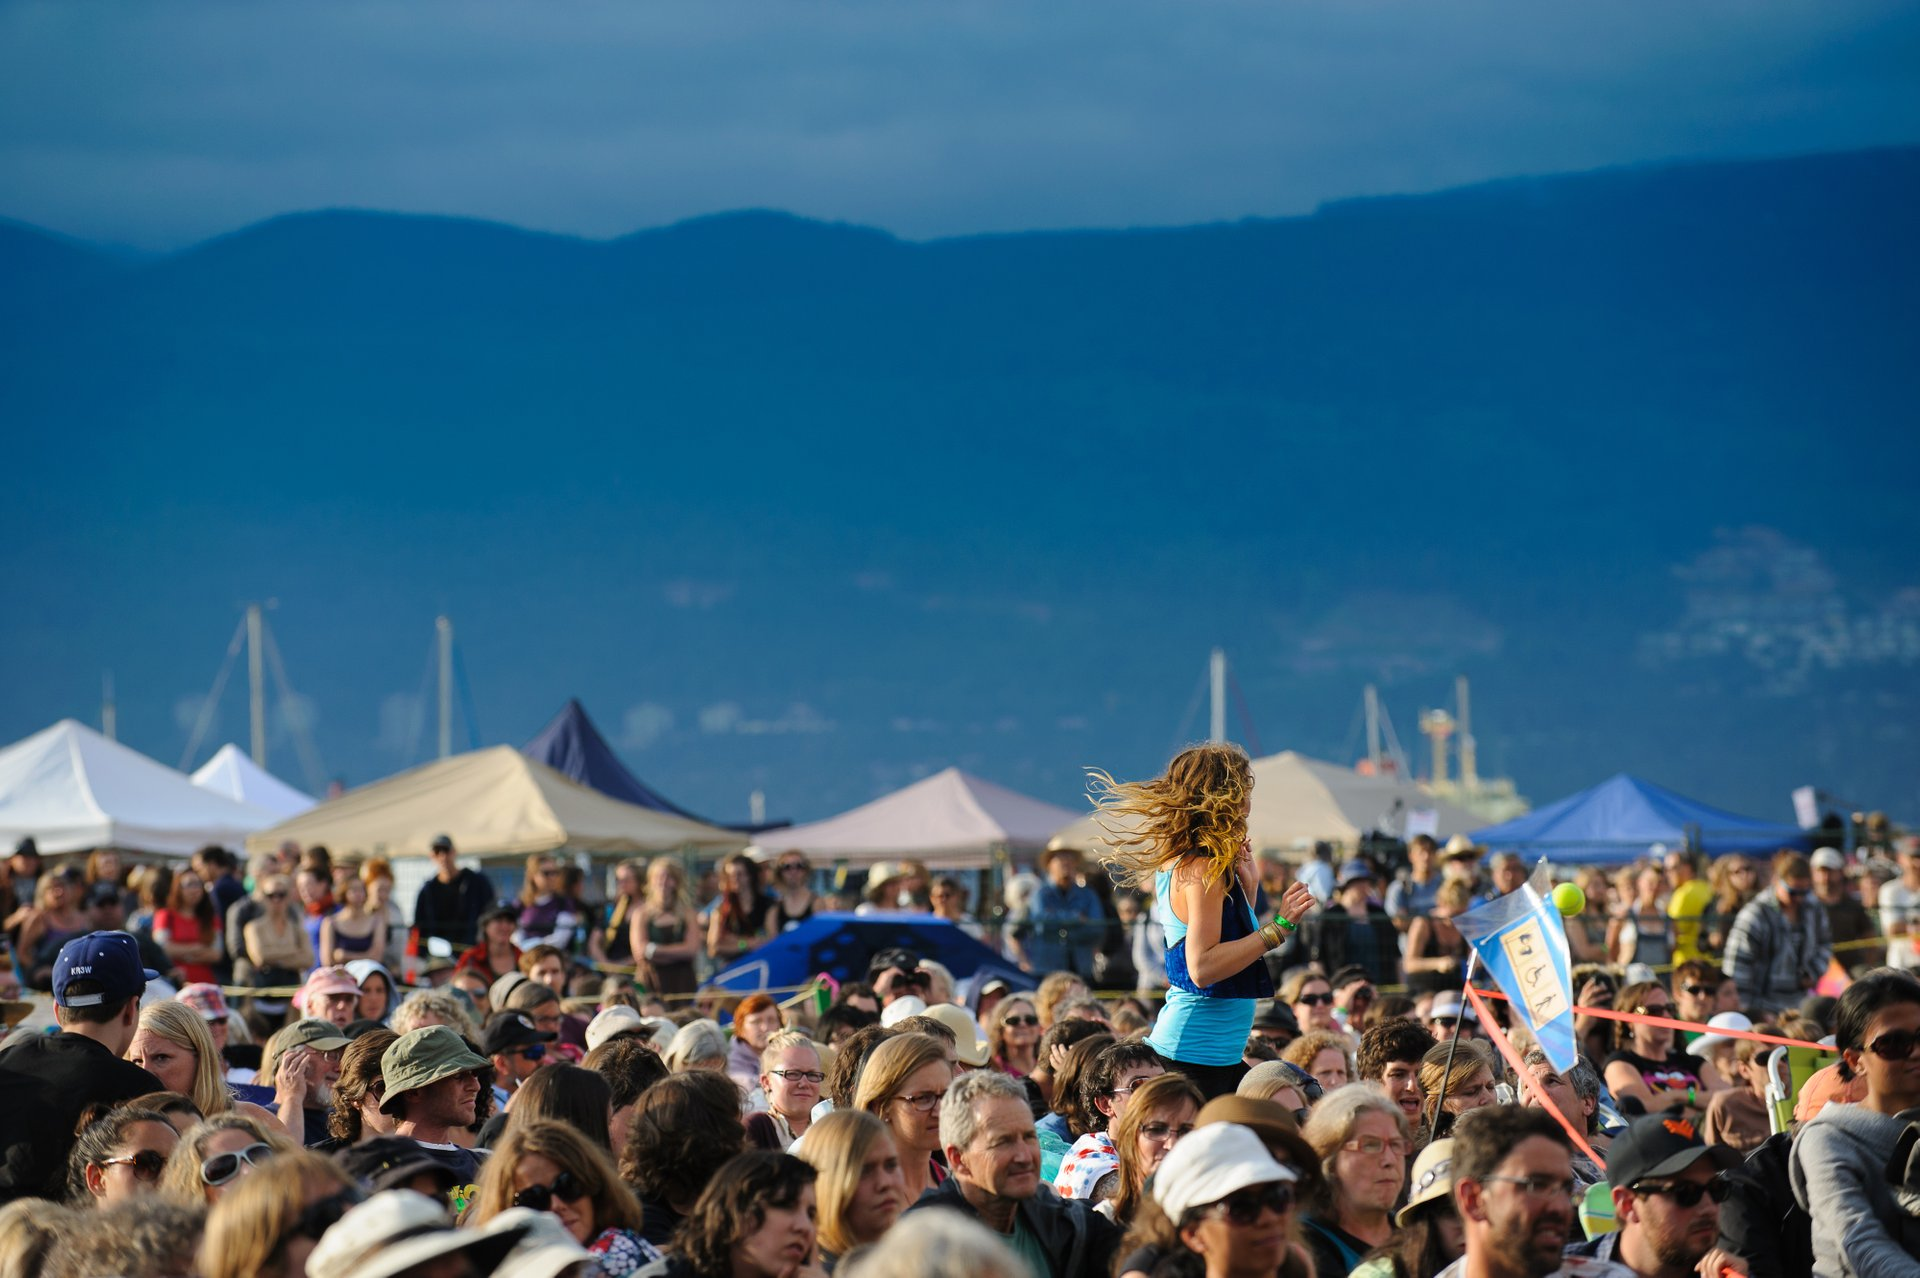 Best time for Vancouver Folk Music Festival in Vancouver 2019